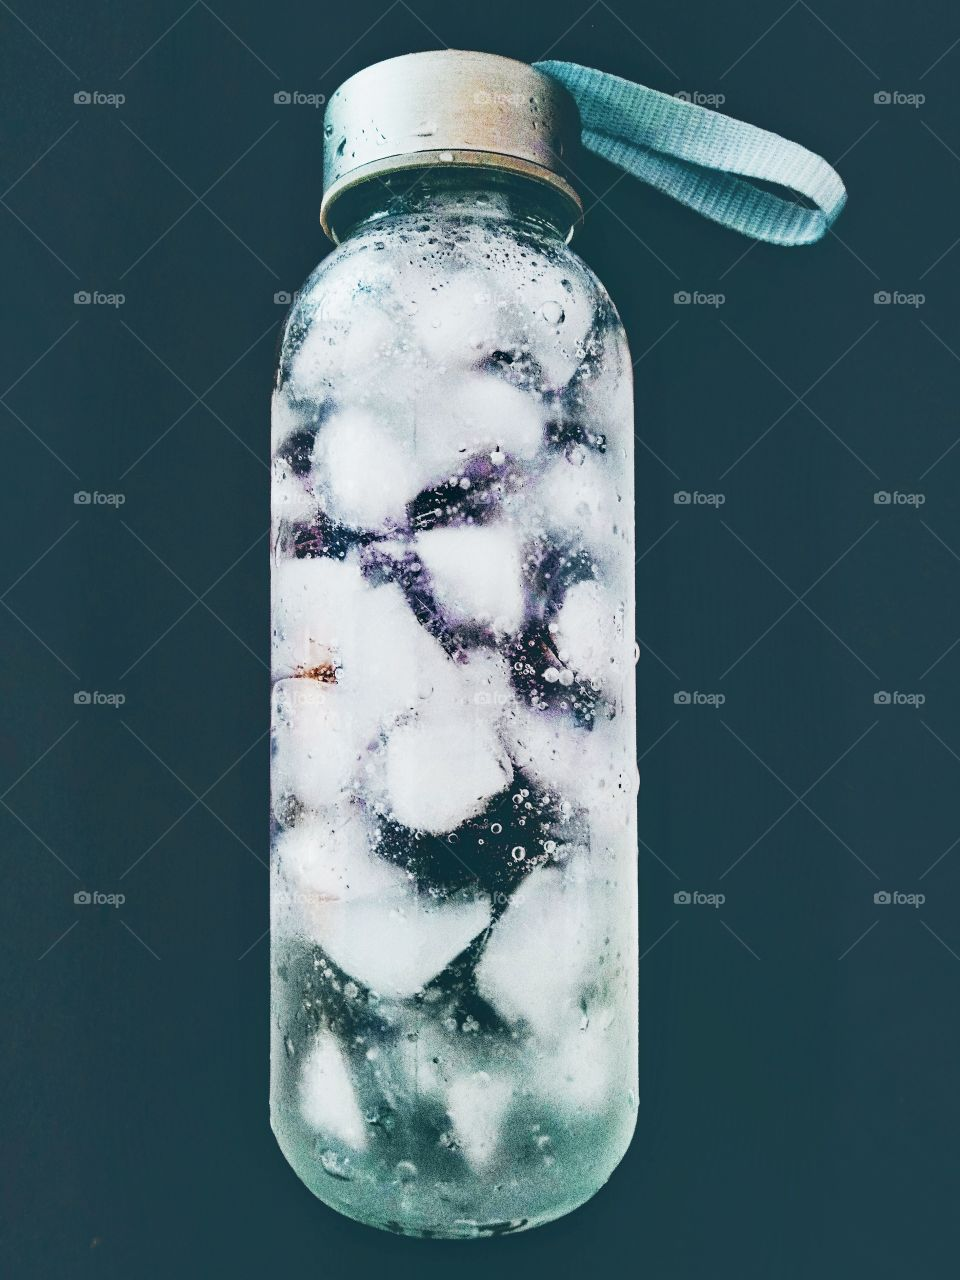 A bottle of water with ices.